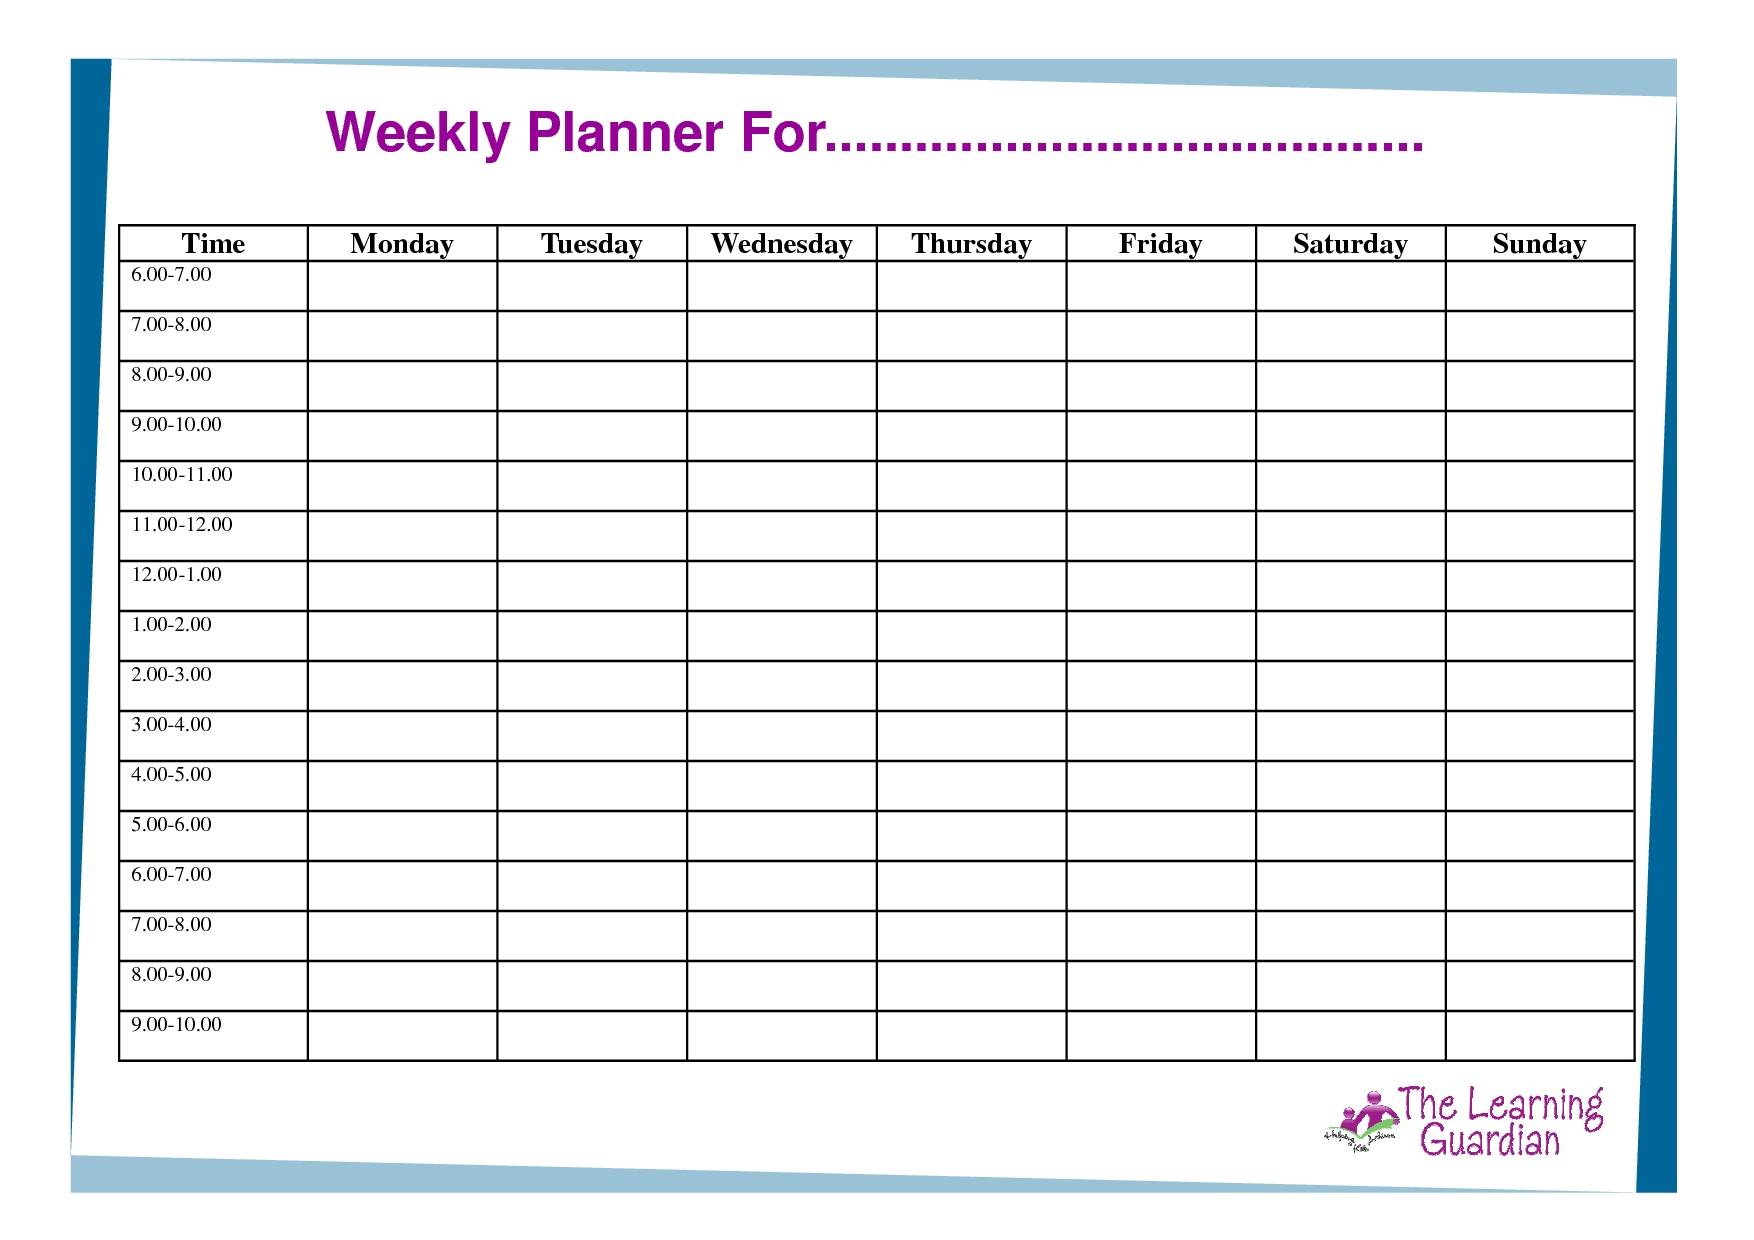 Weekly Time Le Planners Filofax Pinterest Printable Template Hourly for Blank Weekly Hourly Calendar 8-10